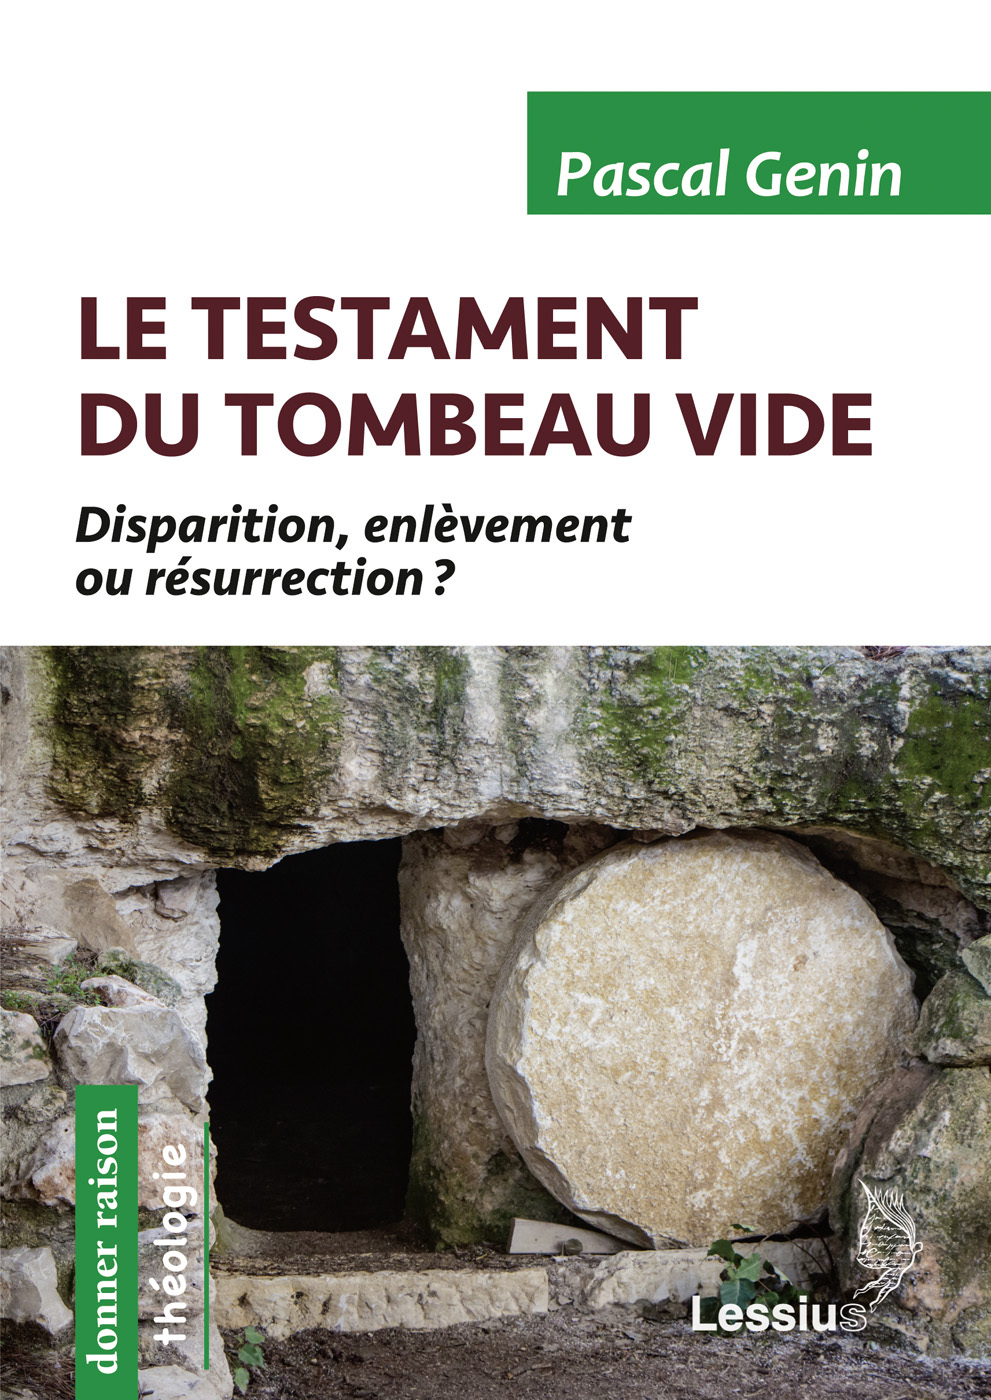 LE TESTAMENT DU TOMBEAU VIDE - DISPARITION, ENLEVEMENT OU RESURRECTION ?